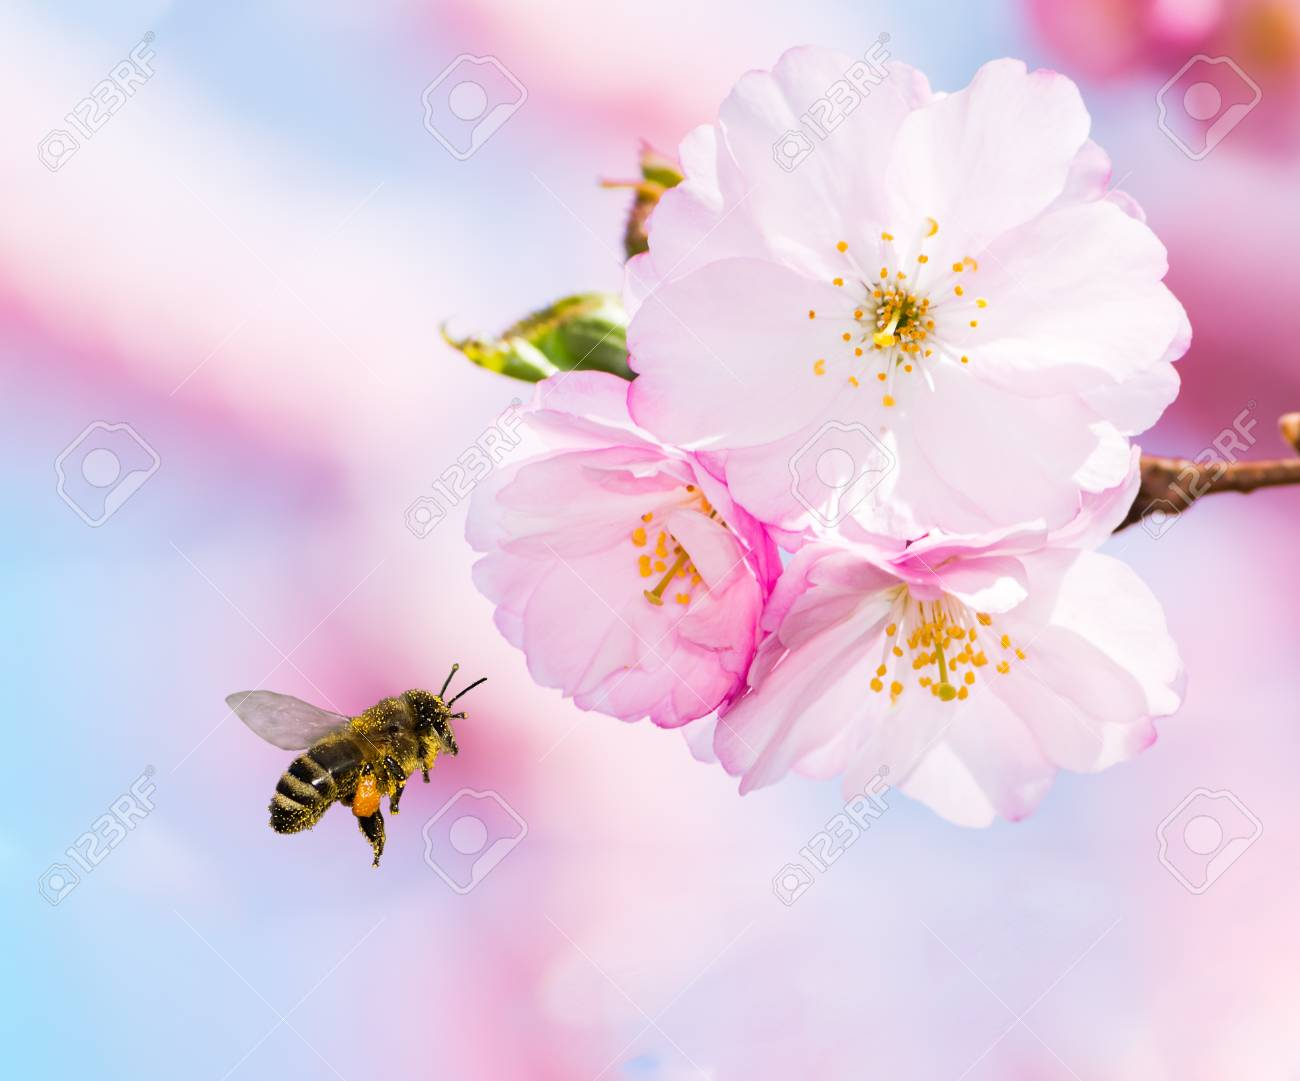 Bee full of pollen flying to pink cherry blossoms - 116246995